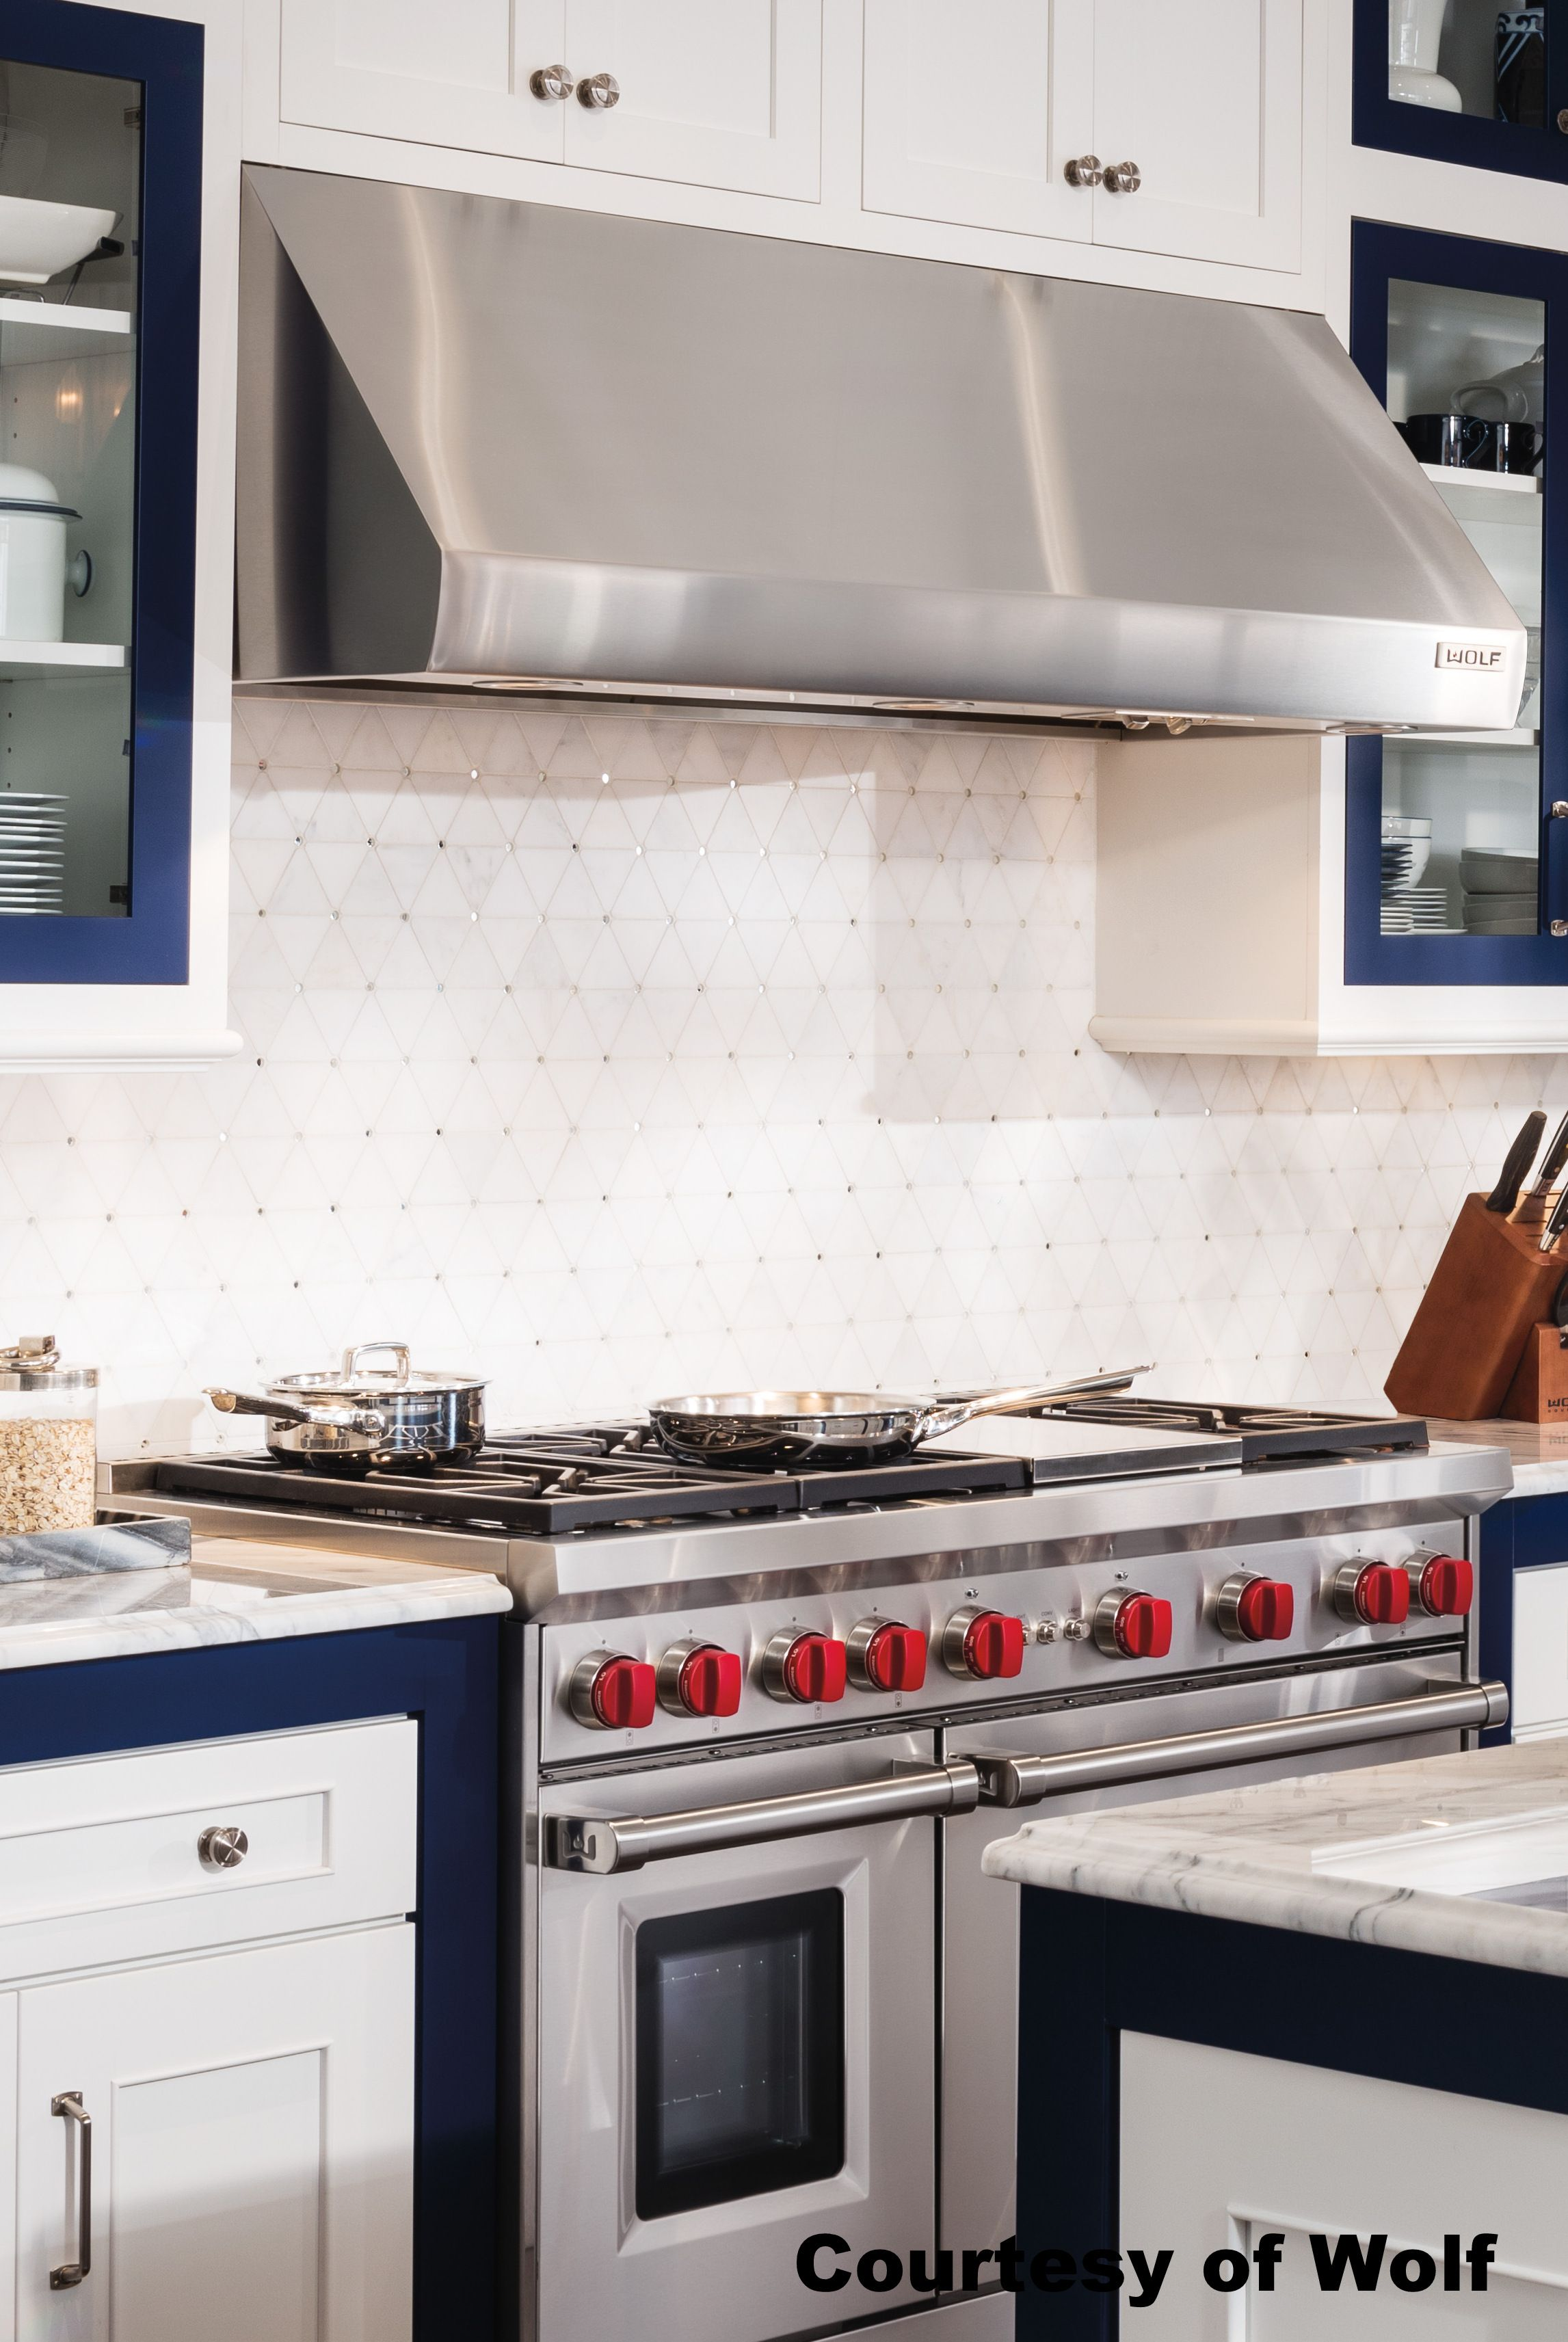 How To Get Rid Of Moisture In Kitchen Cabinets